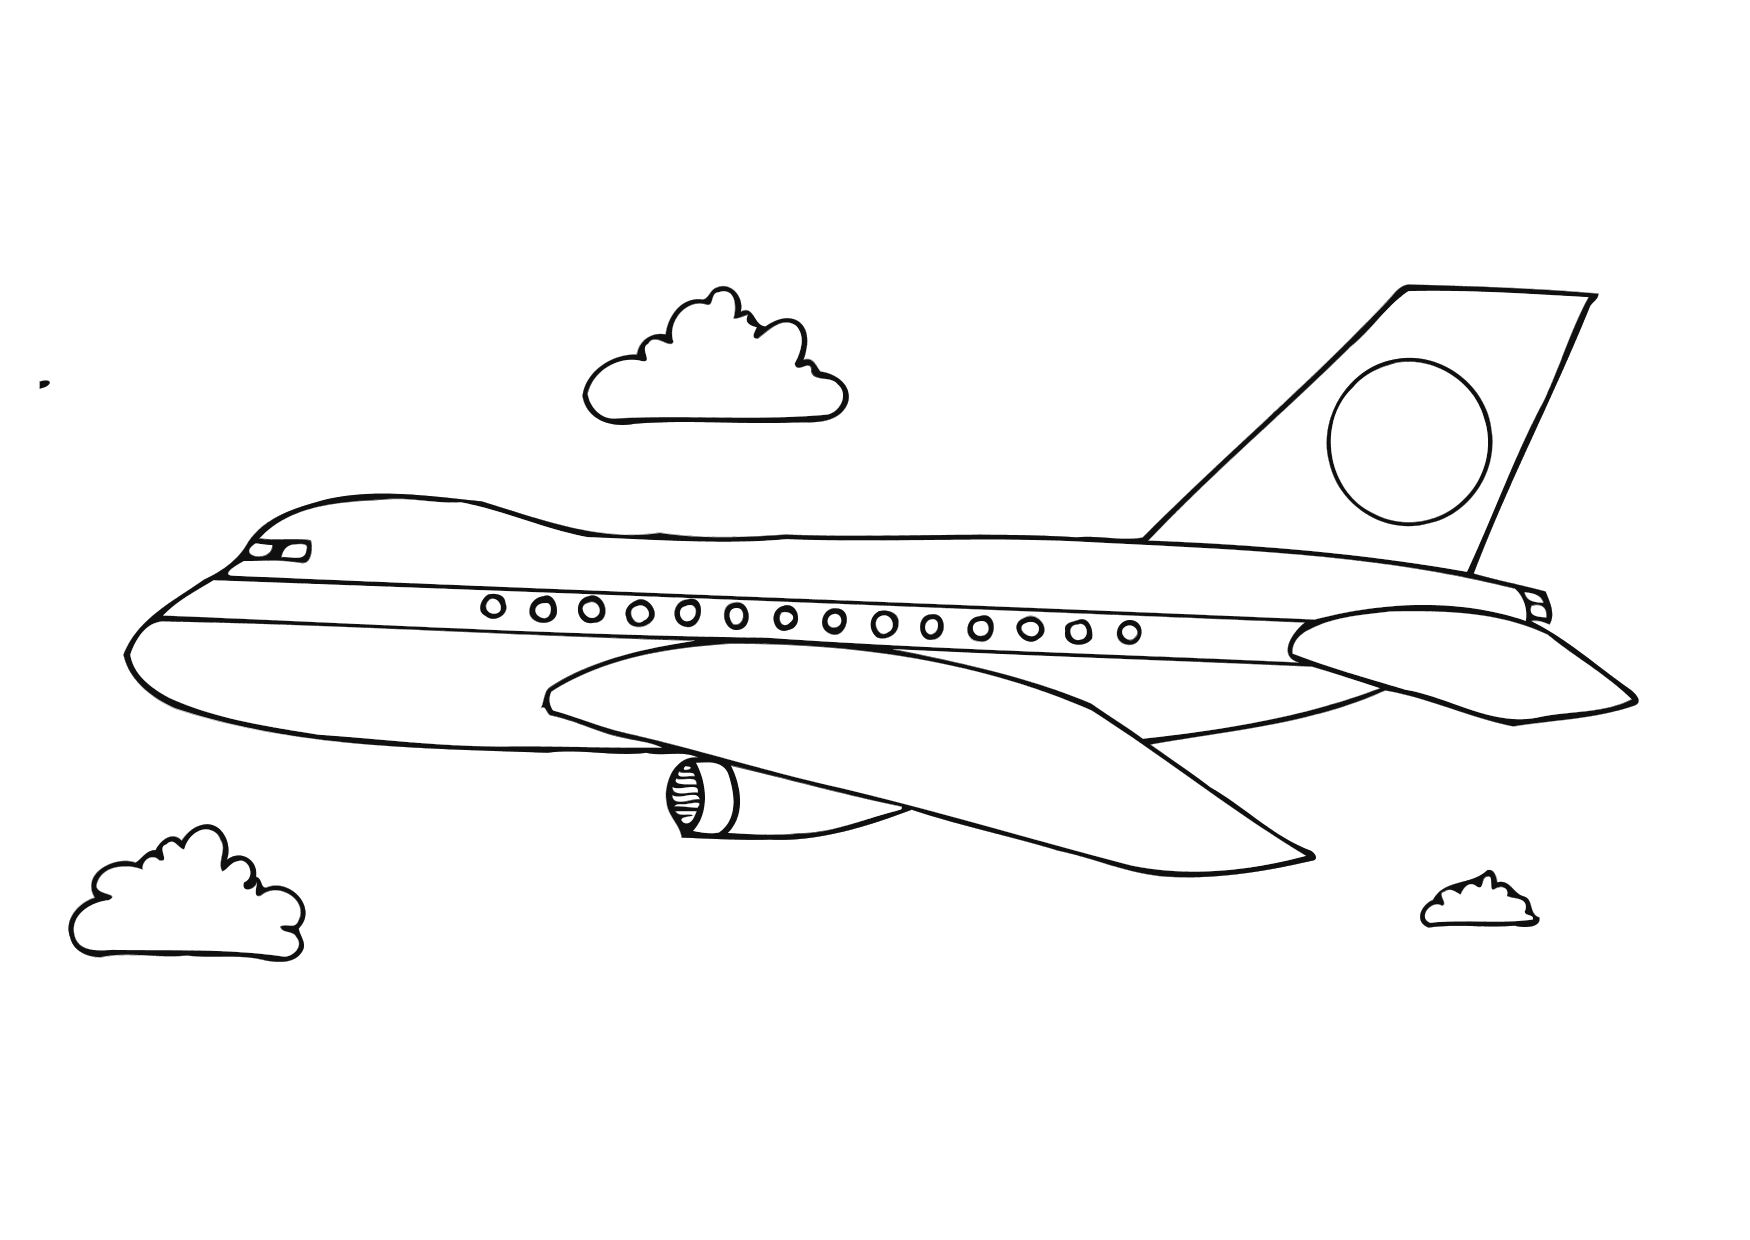 jet coloring images print download the sophisticated transportation of jet coloring images